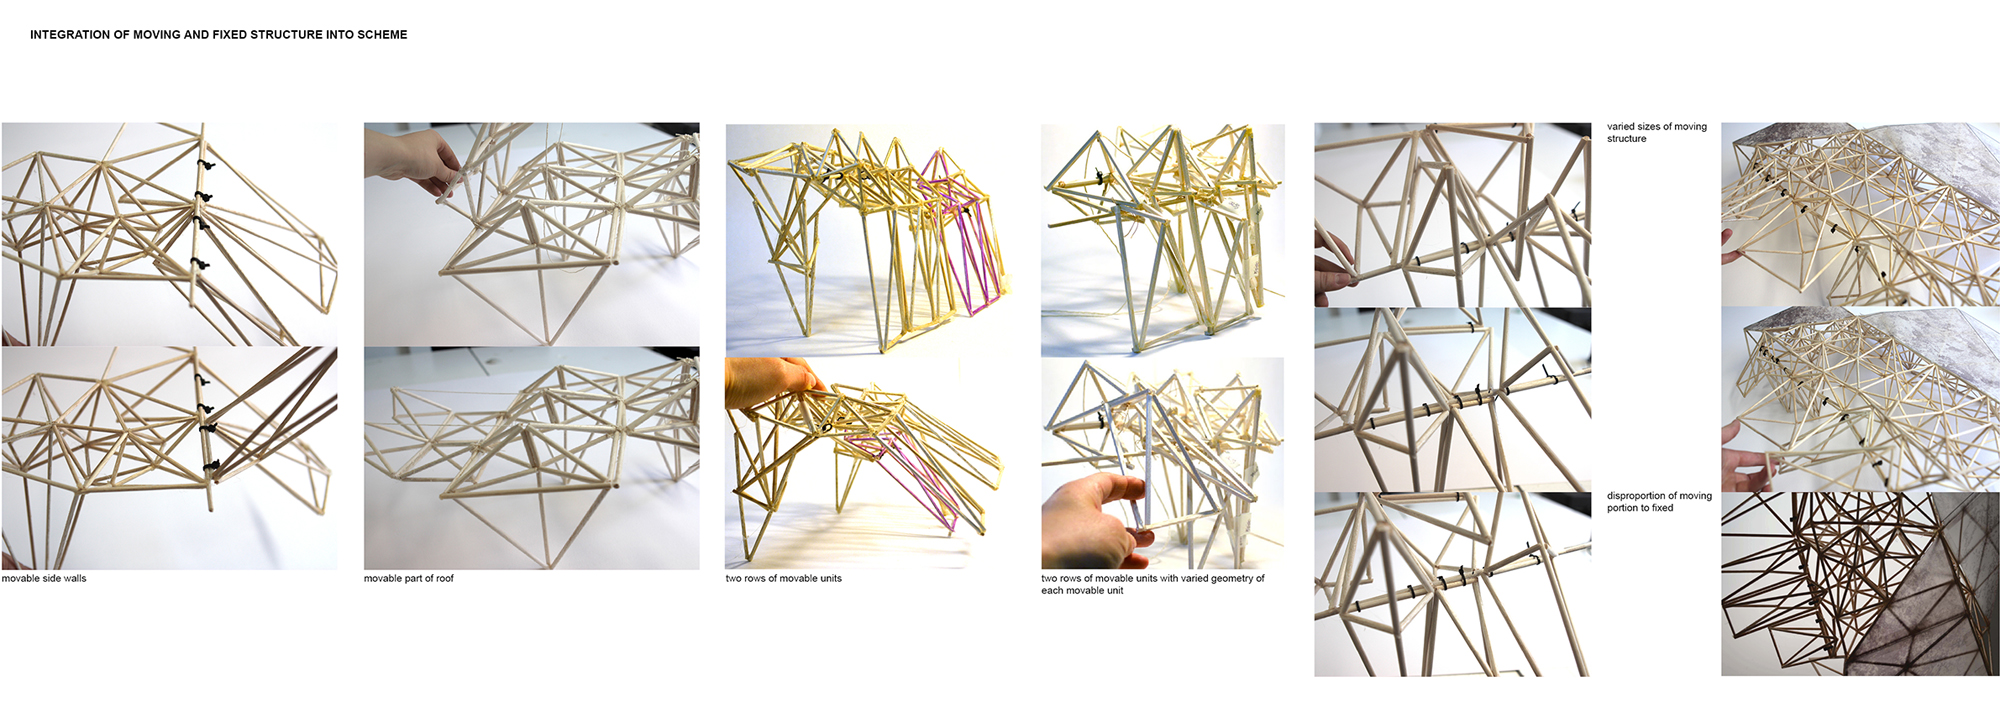 AA School Of Architecture Projects Review 2011 Diploma 19 Elena Gaidar